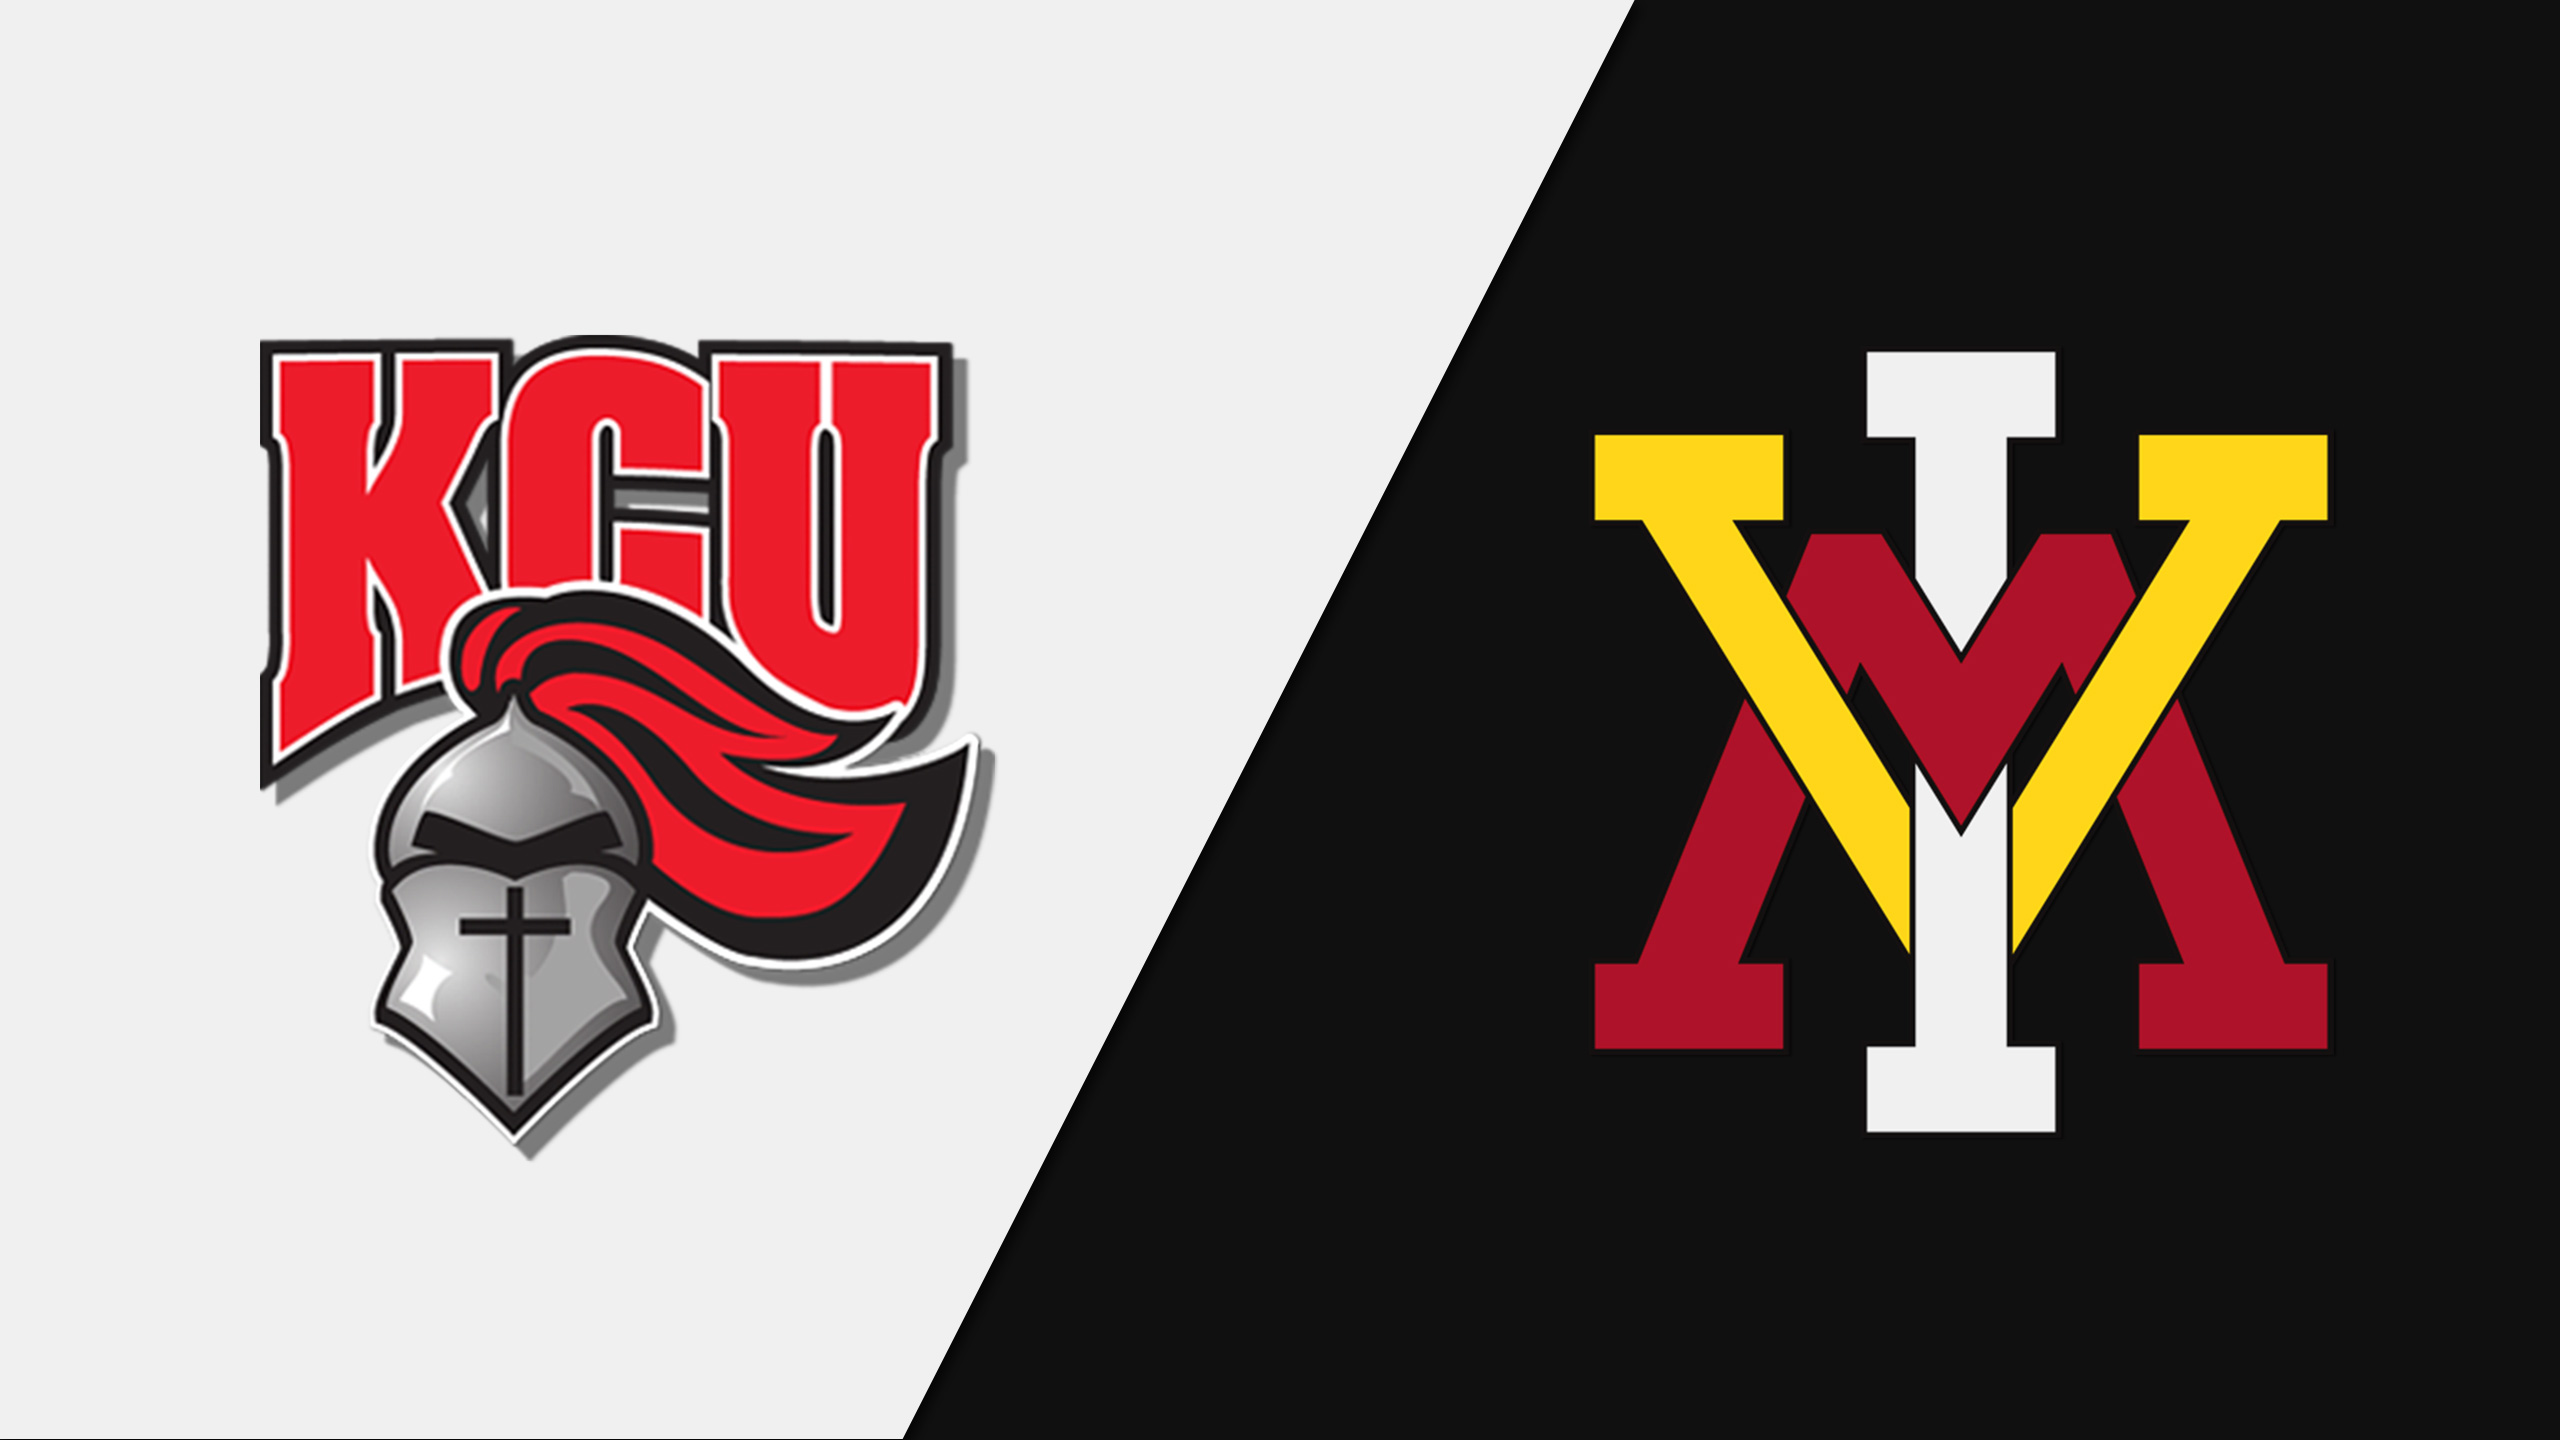 Kentucky Christian vs. VMI